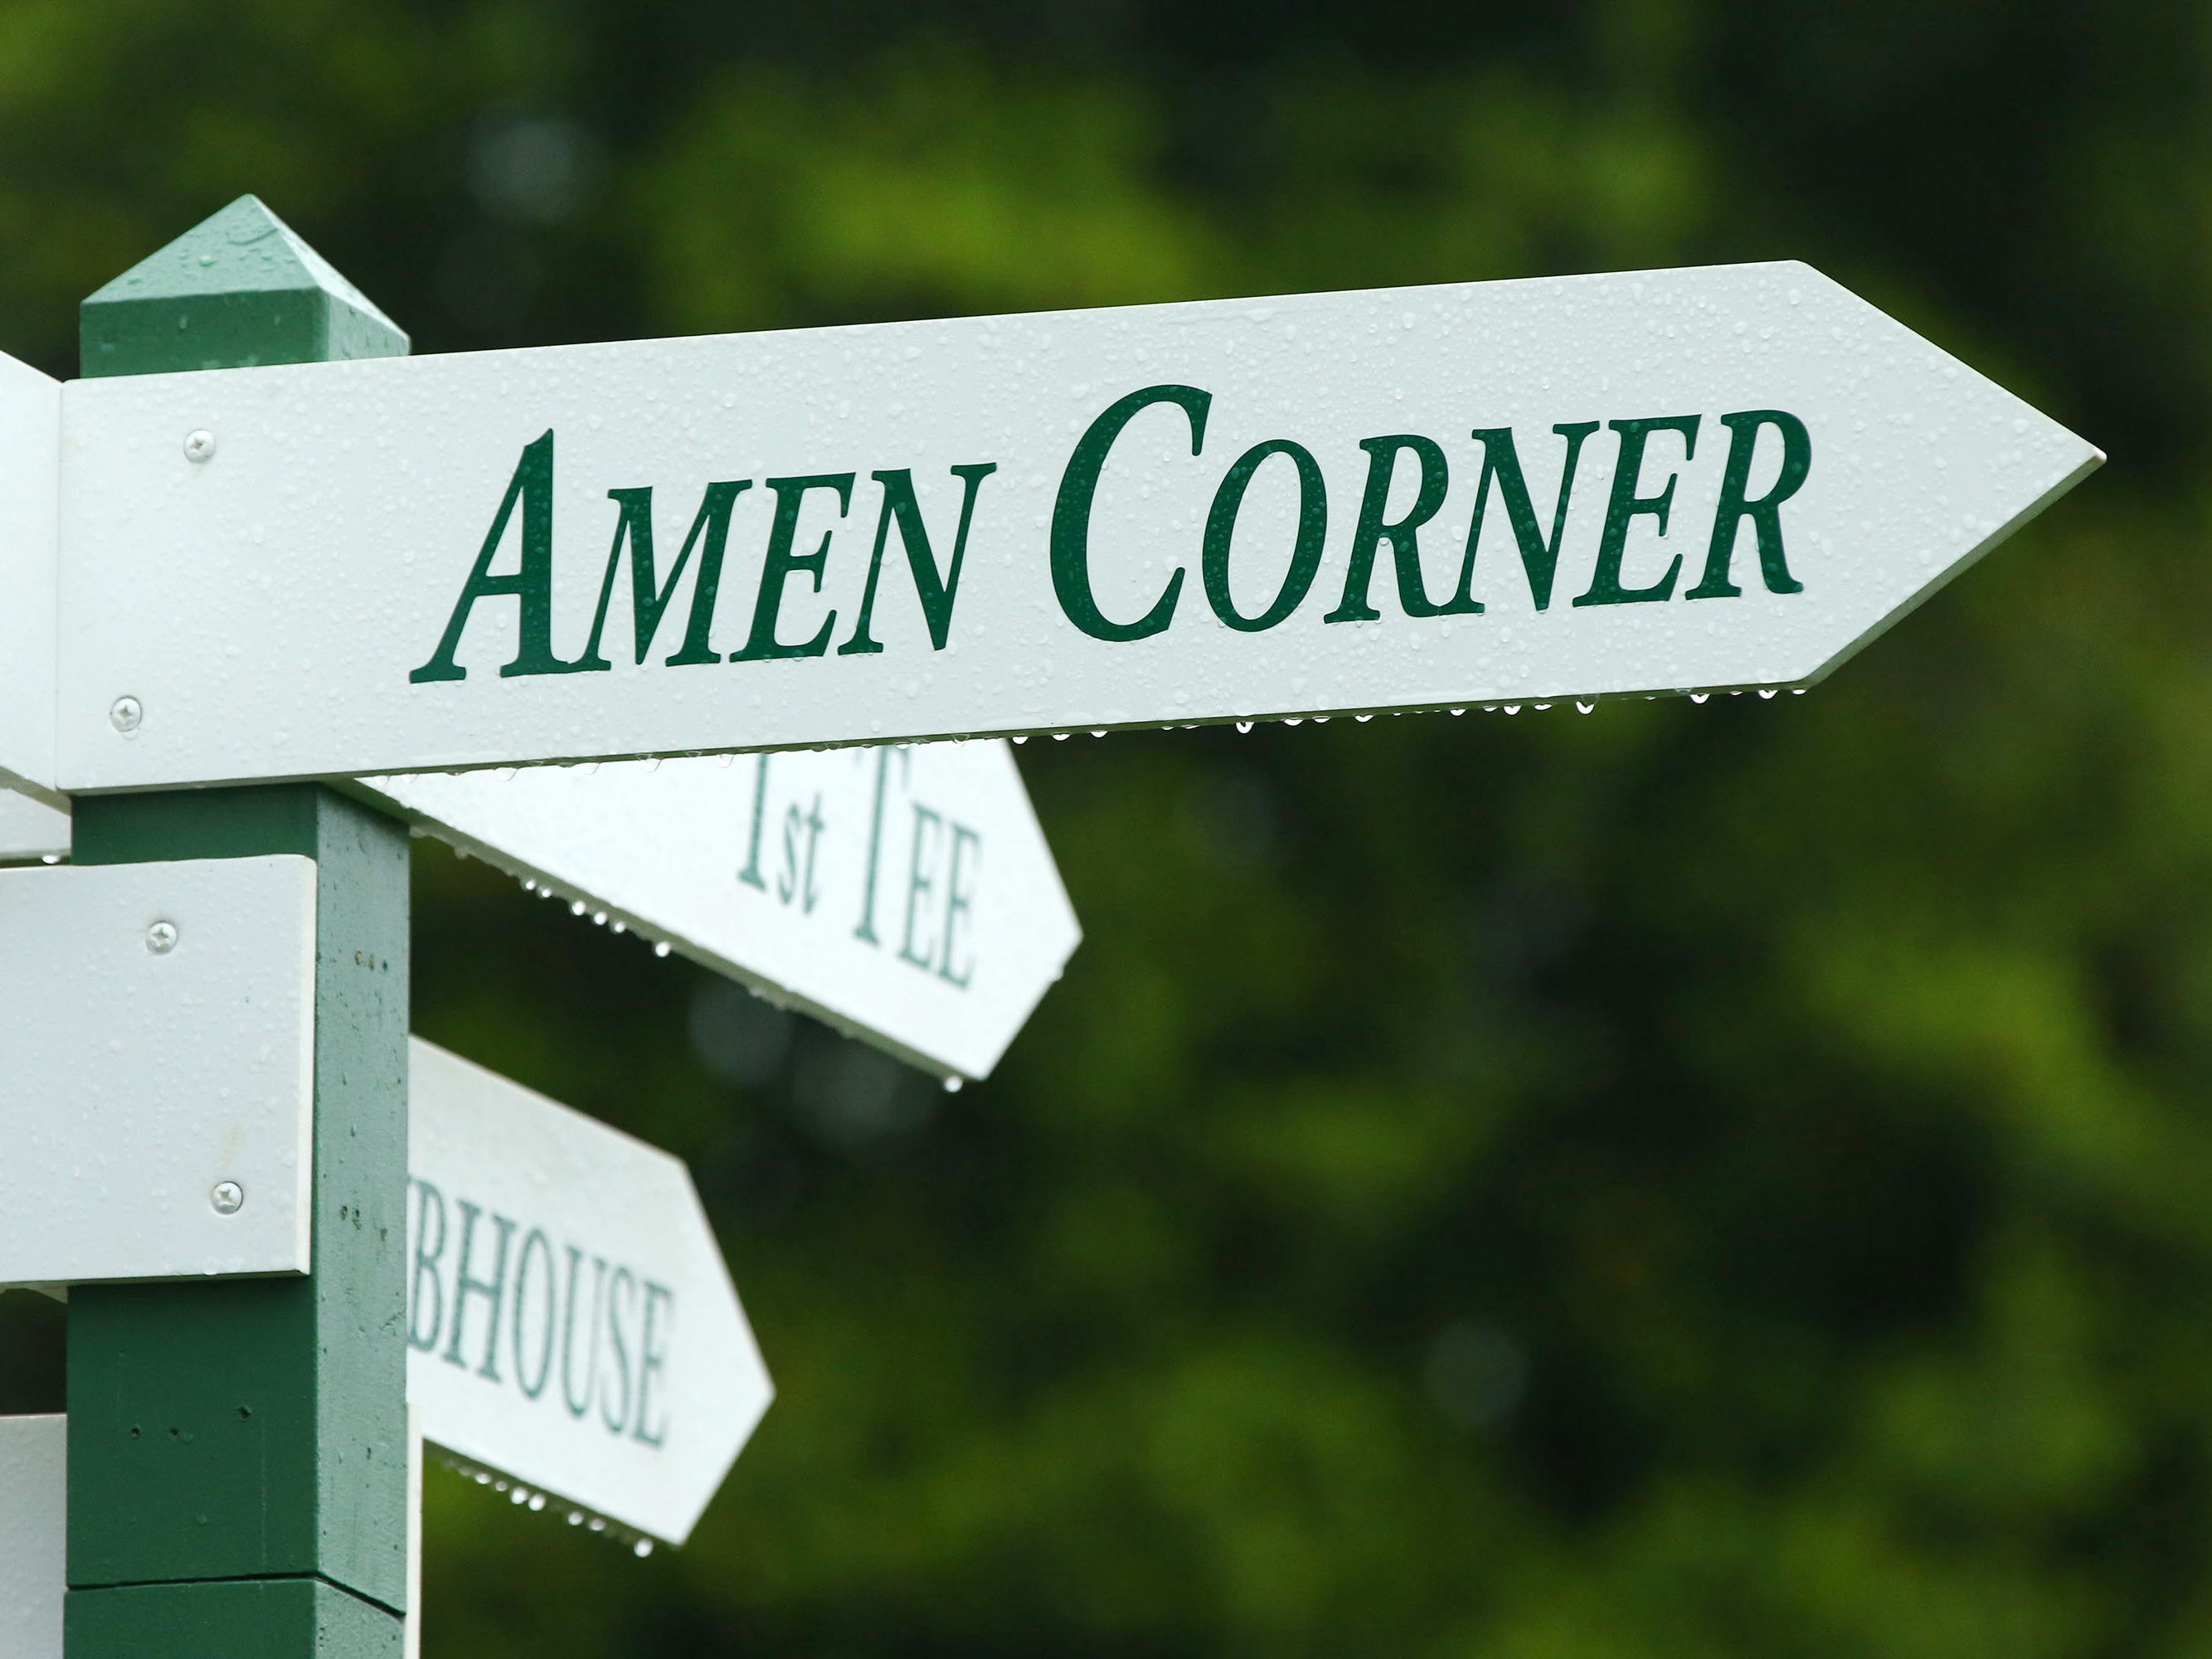 Apr 7, 2019; Augusta, GA, USA; Rain drops cover an 'Amen Corner' sign during the finals of the Drive, Chip and Putt competition at Augusta National Golf Club. Mandatory Credit: Rob Schumacher-USA TODAY Sports